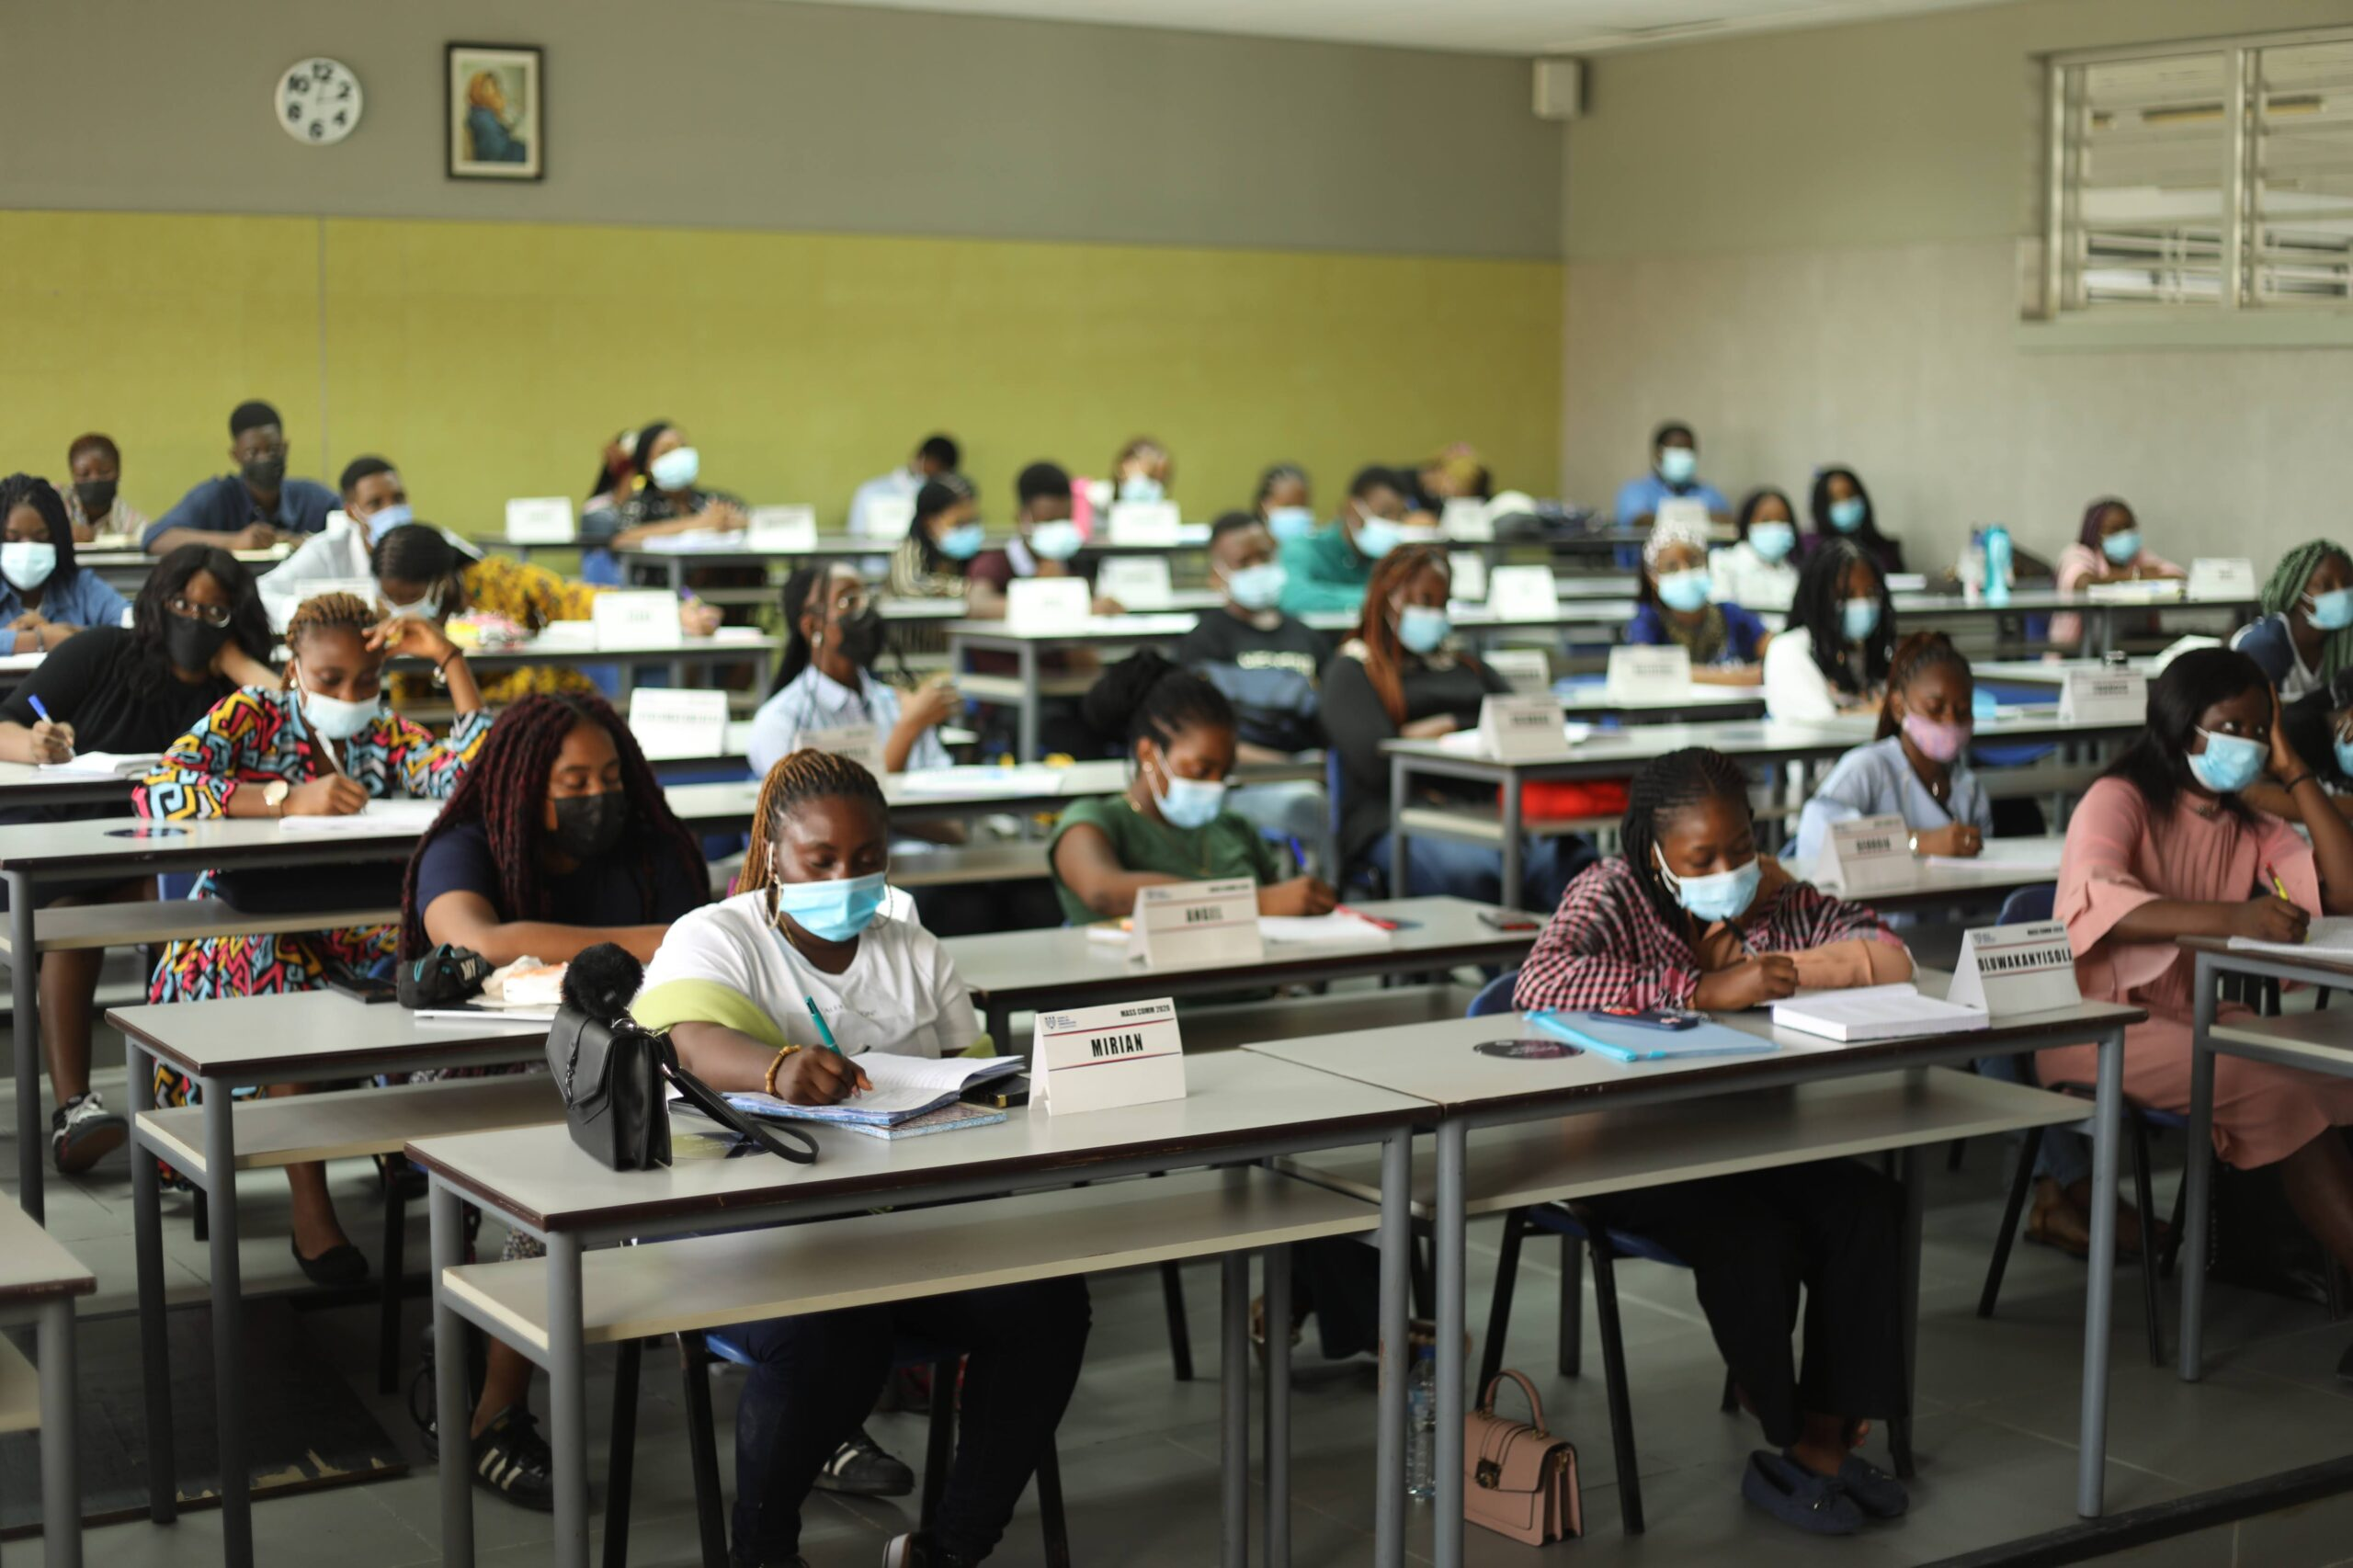 SMC resumes physical classes for the 2020/2021 Academic session